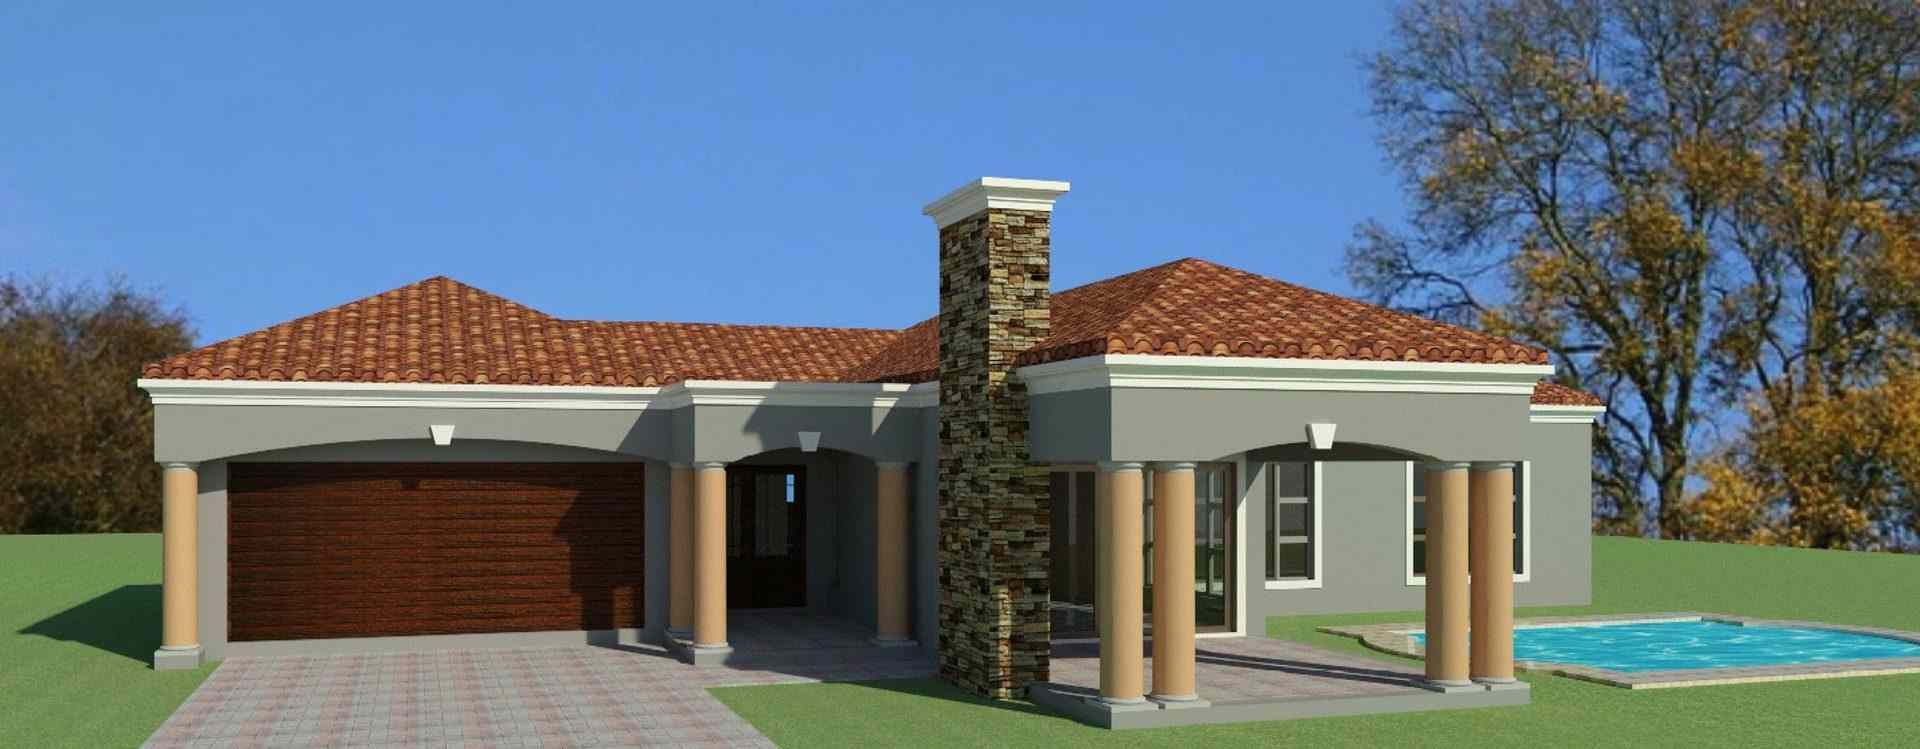 3 bedroom house plan for sale south african designs - Single story 4 bedroom modern house plans ...